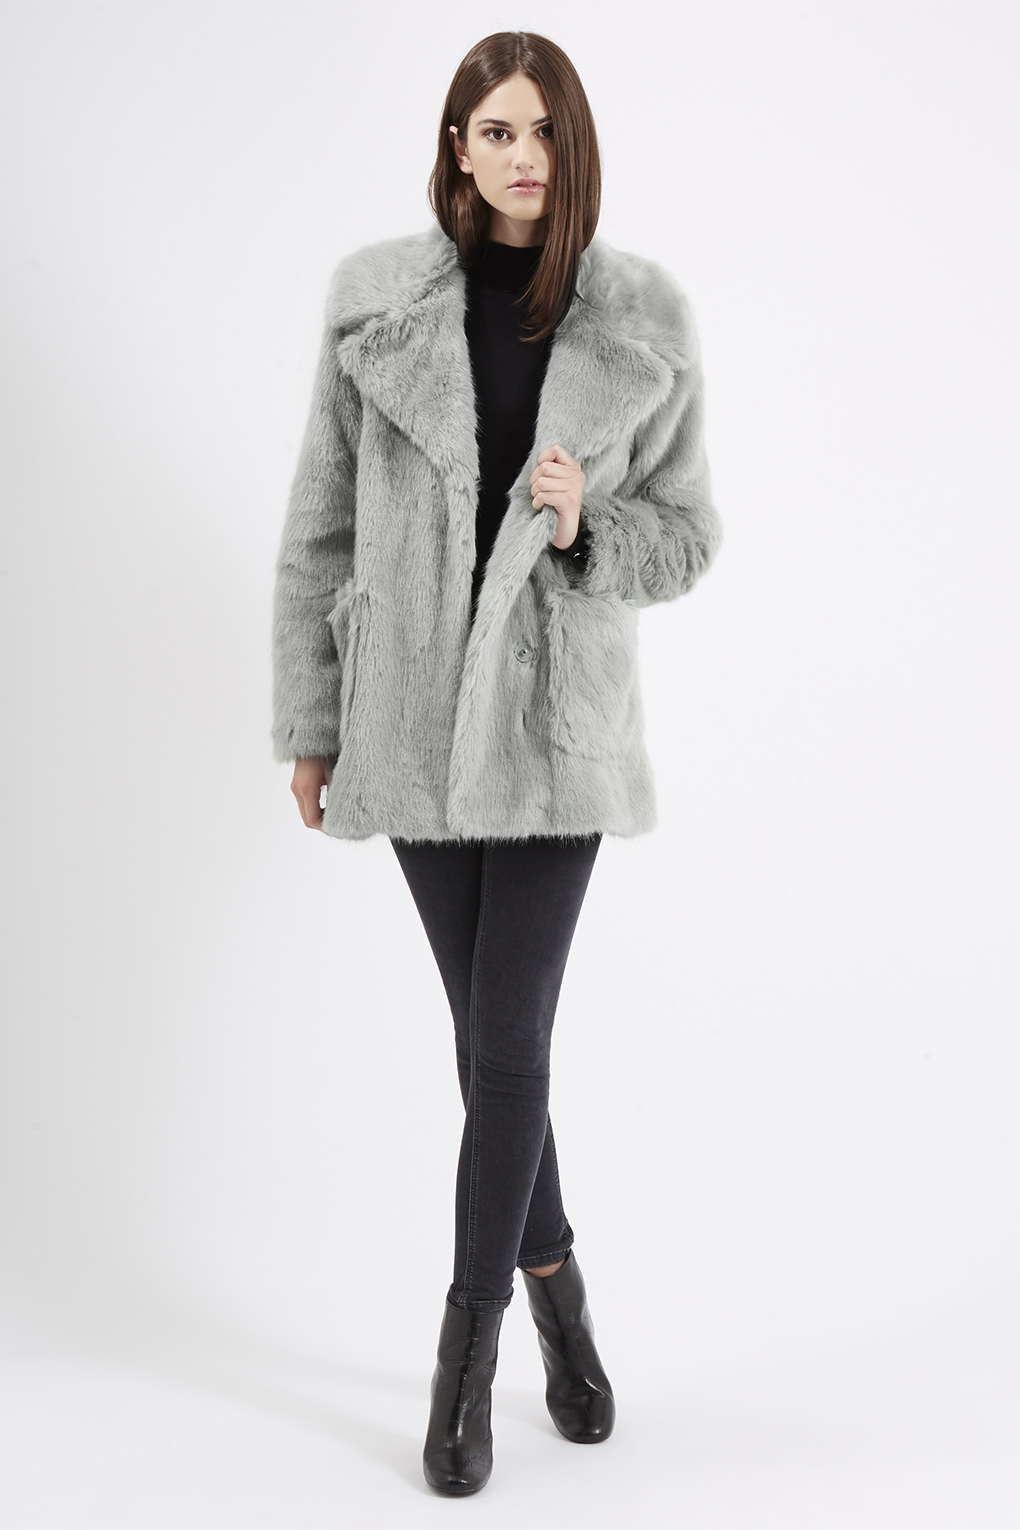 Patch Pocket Luxe Faux Fur Coat | Fur coat, Fur and Topshop